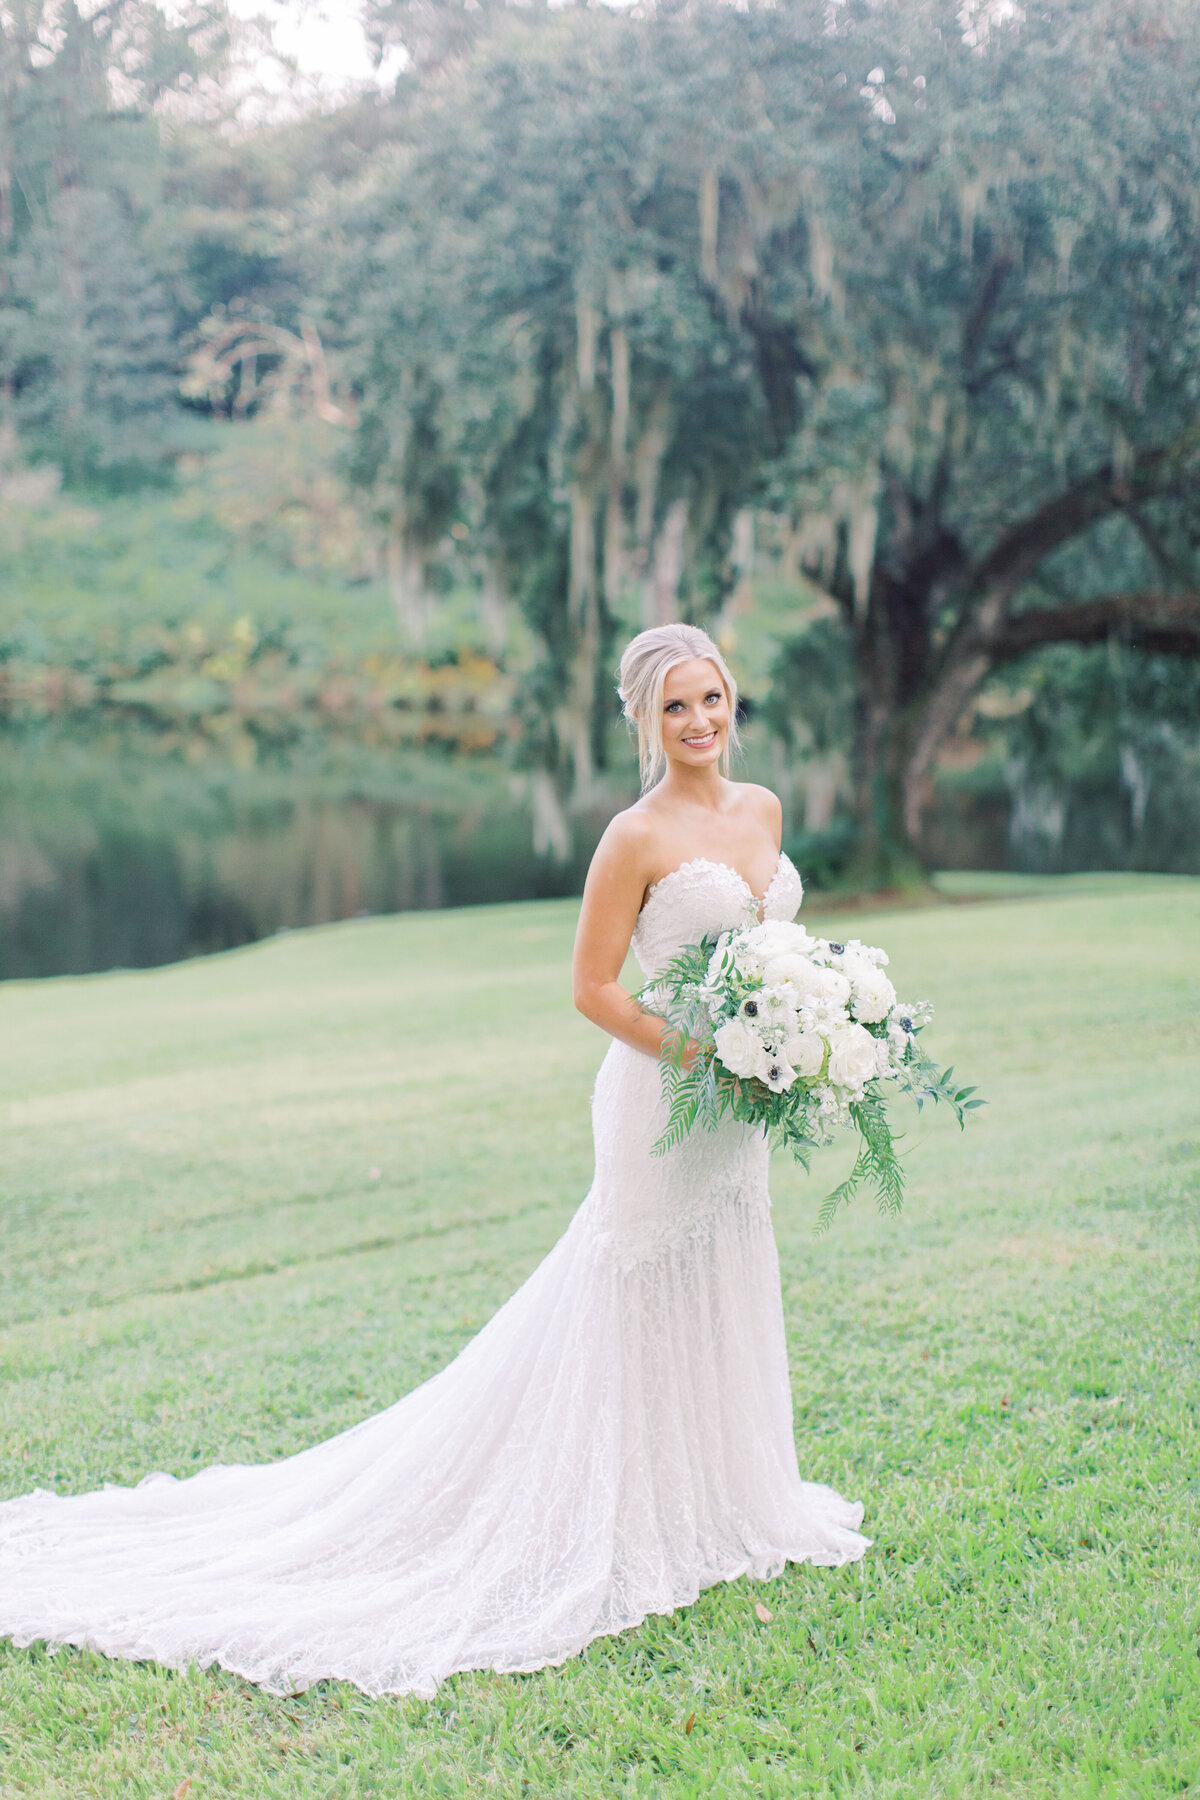 Melton_Wedding__Middleton_Place_Plantation_Charleston_South_Carolina_Jacksonville_Florida_Devon_Donnahoo_Photography__0280